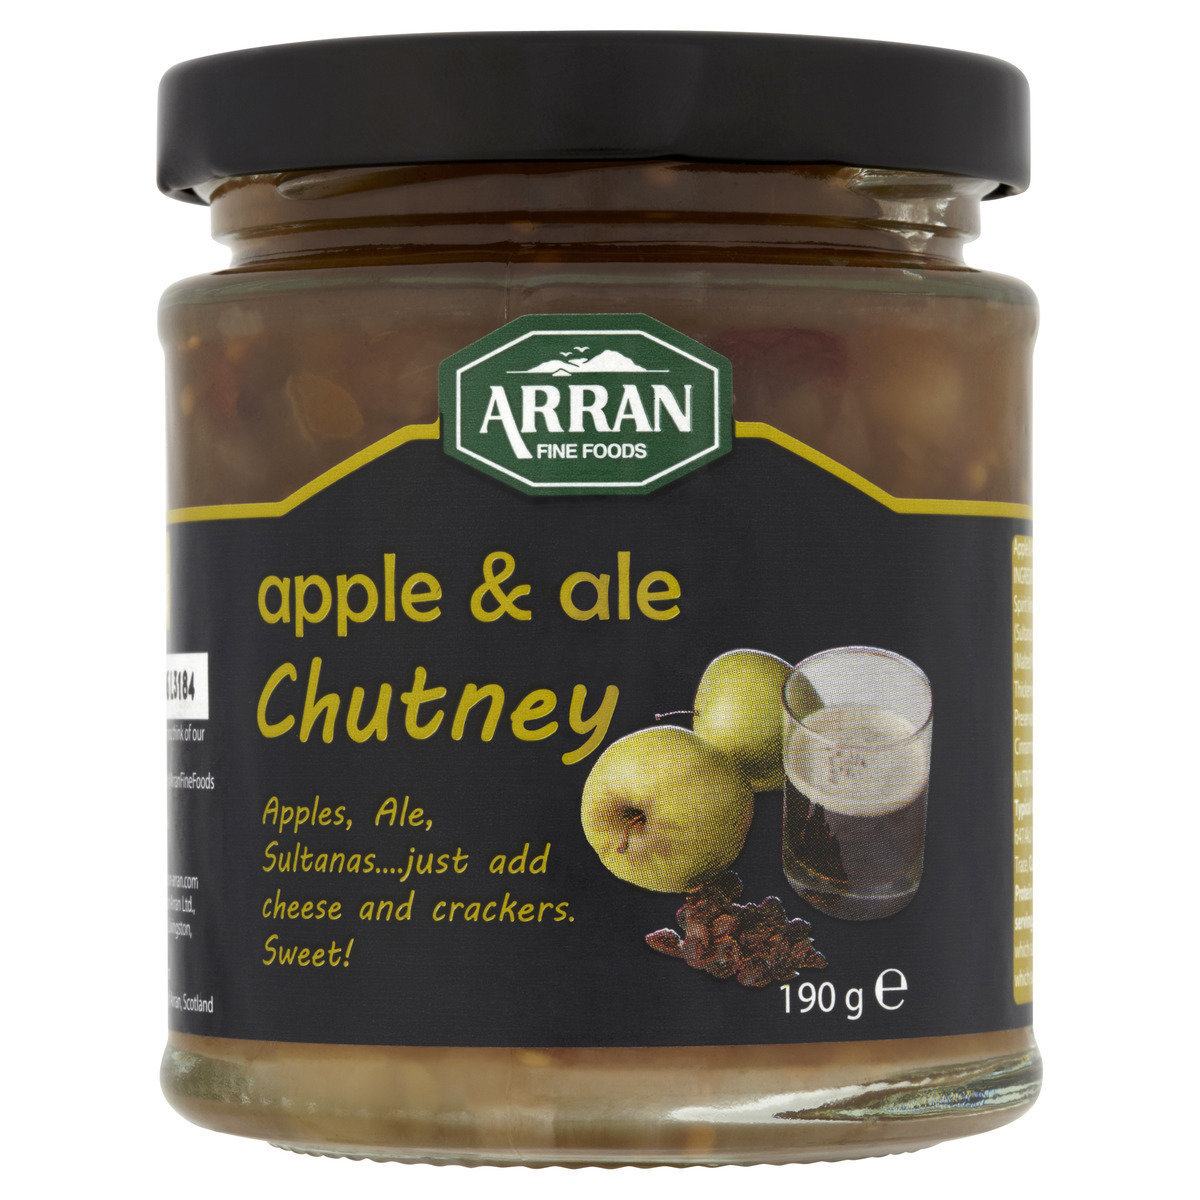 Apple & Ale Chutney